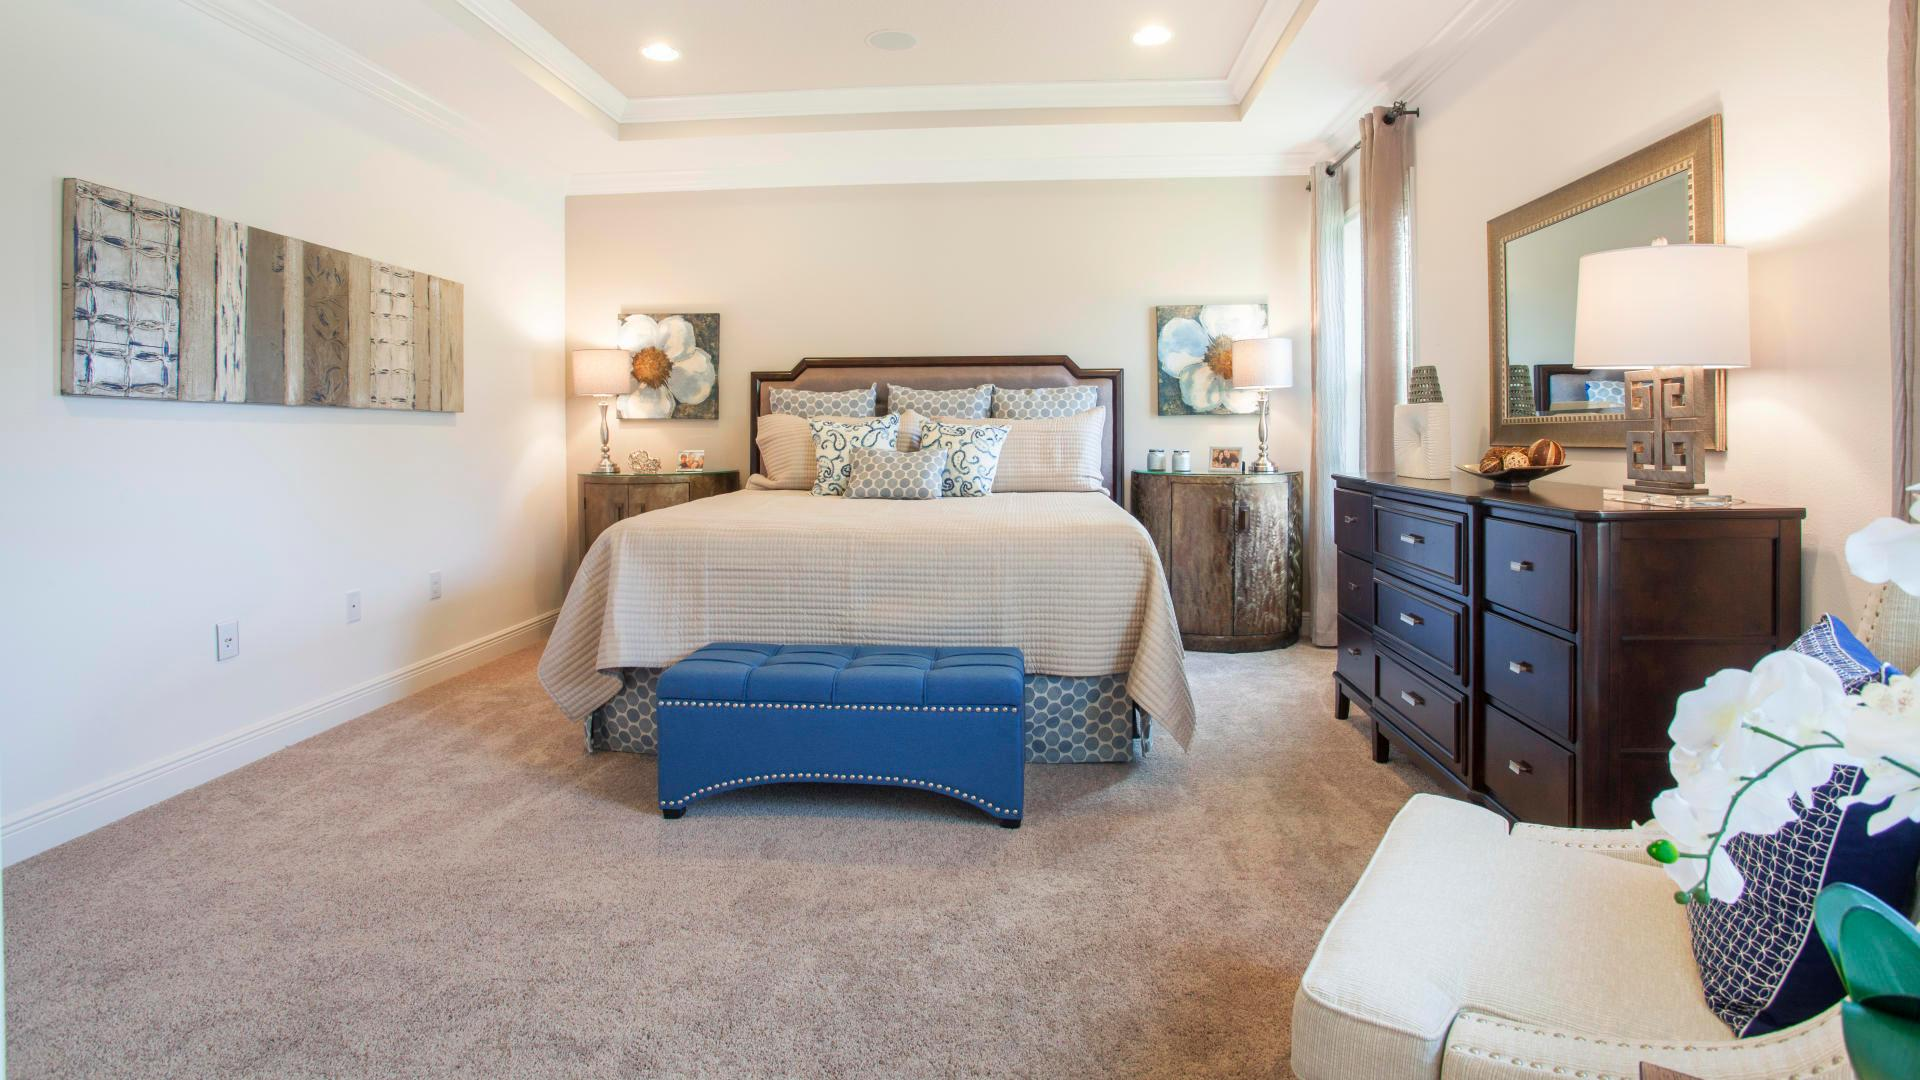 Bedroom featured in the Melody By Maronda Homes in Daytona Beach, FL